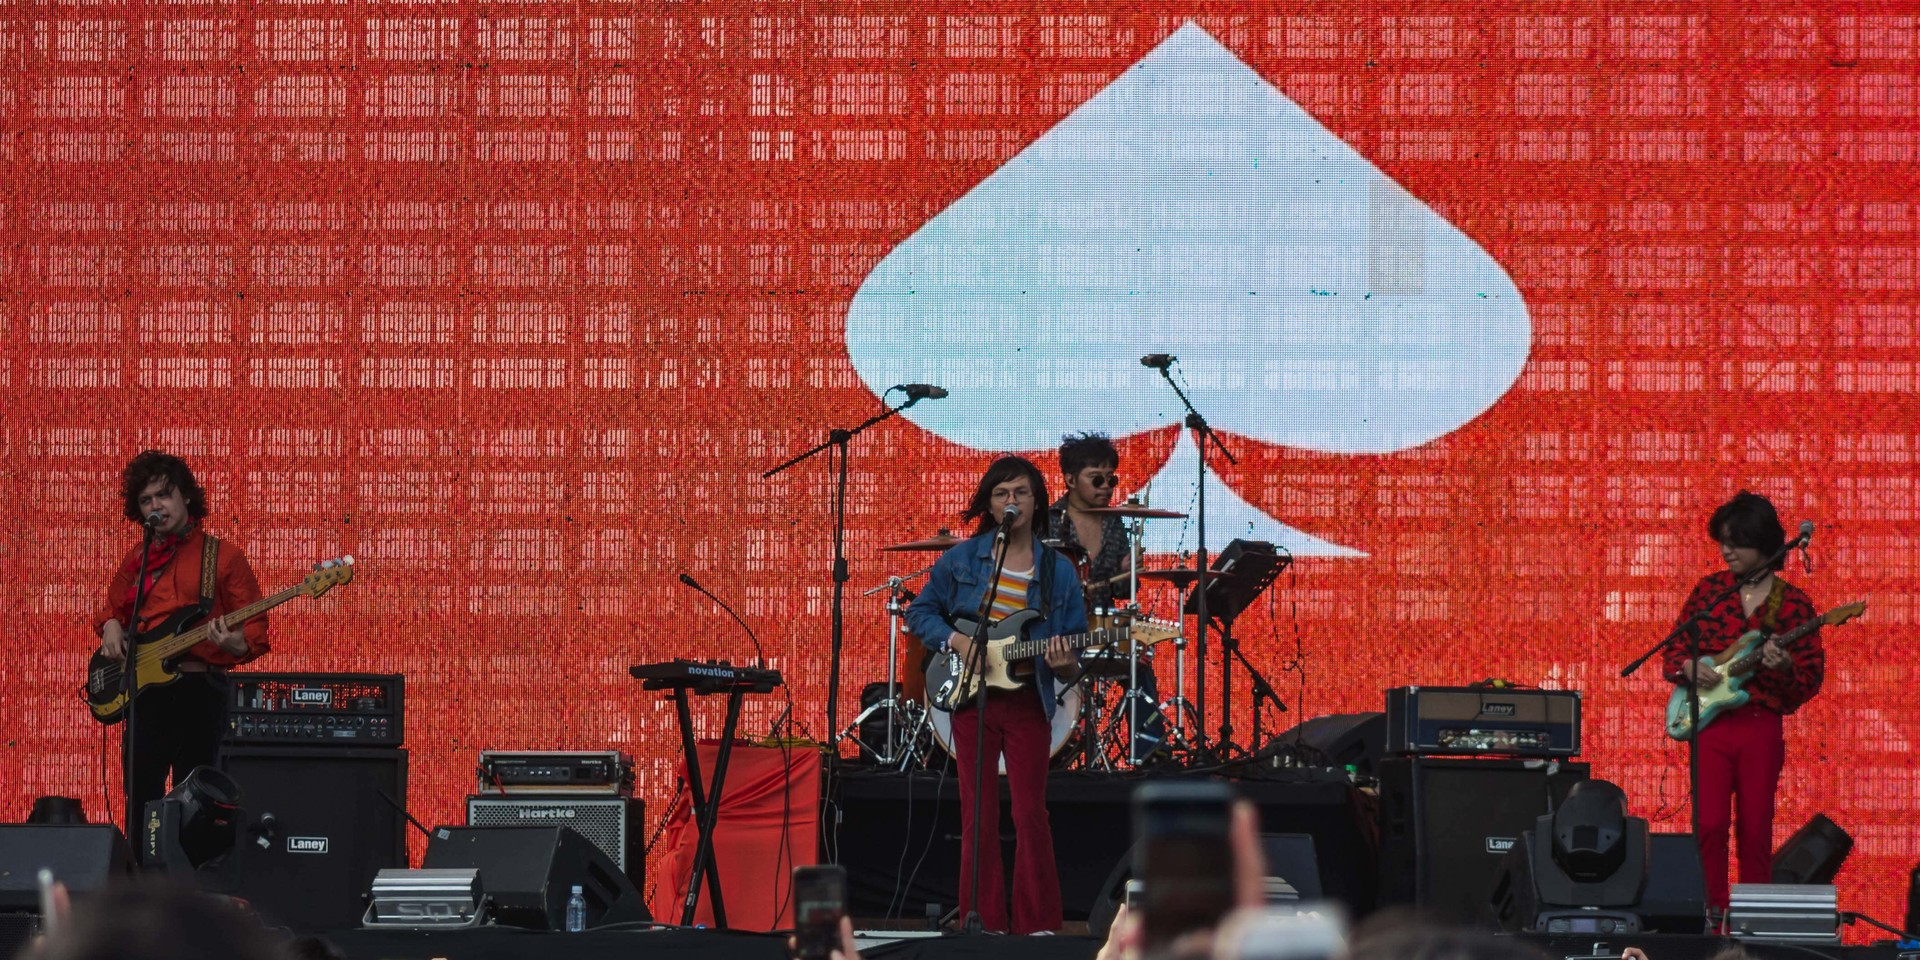 """IV of Spades is not disbanding,"" the band assures fans in official statement"